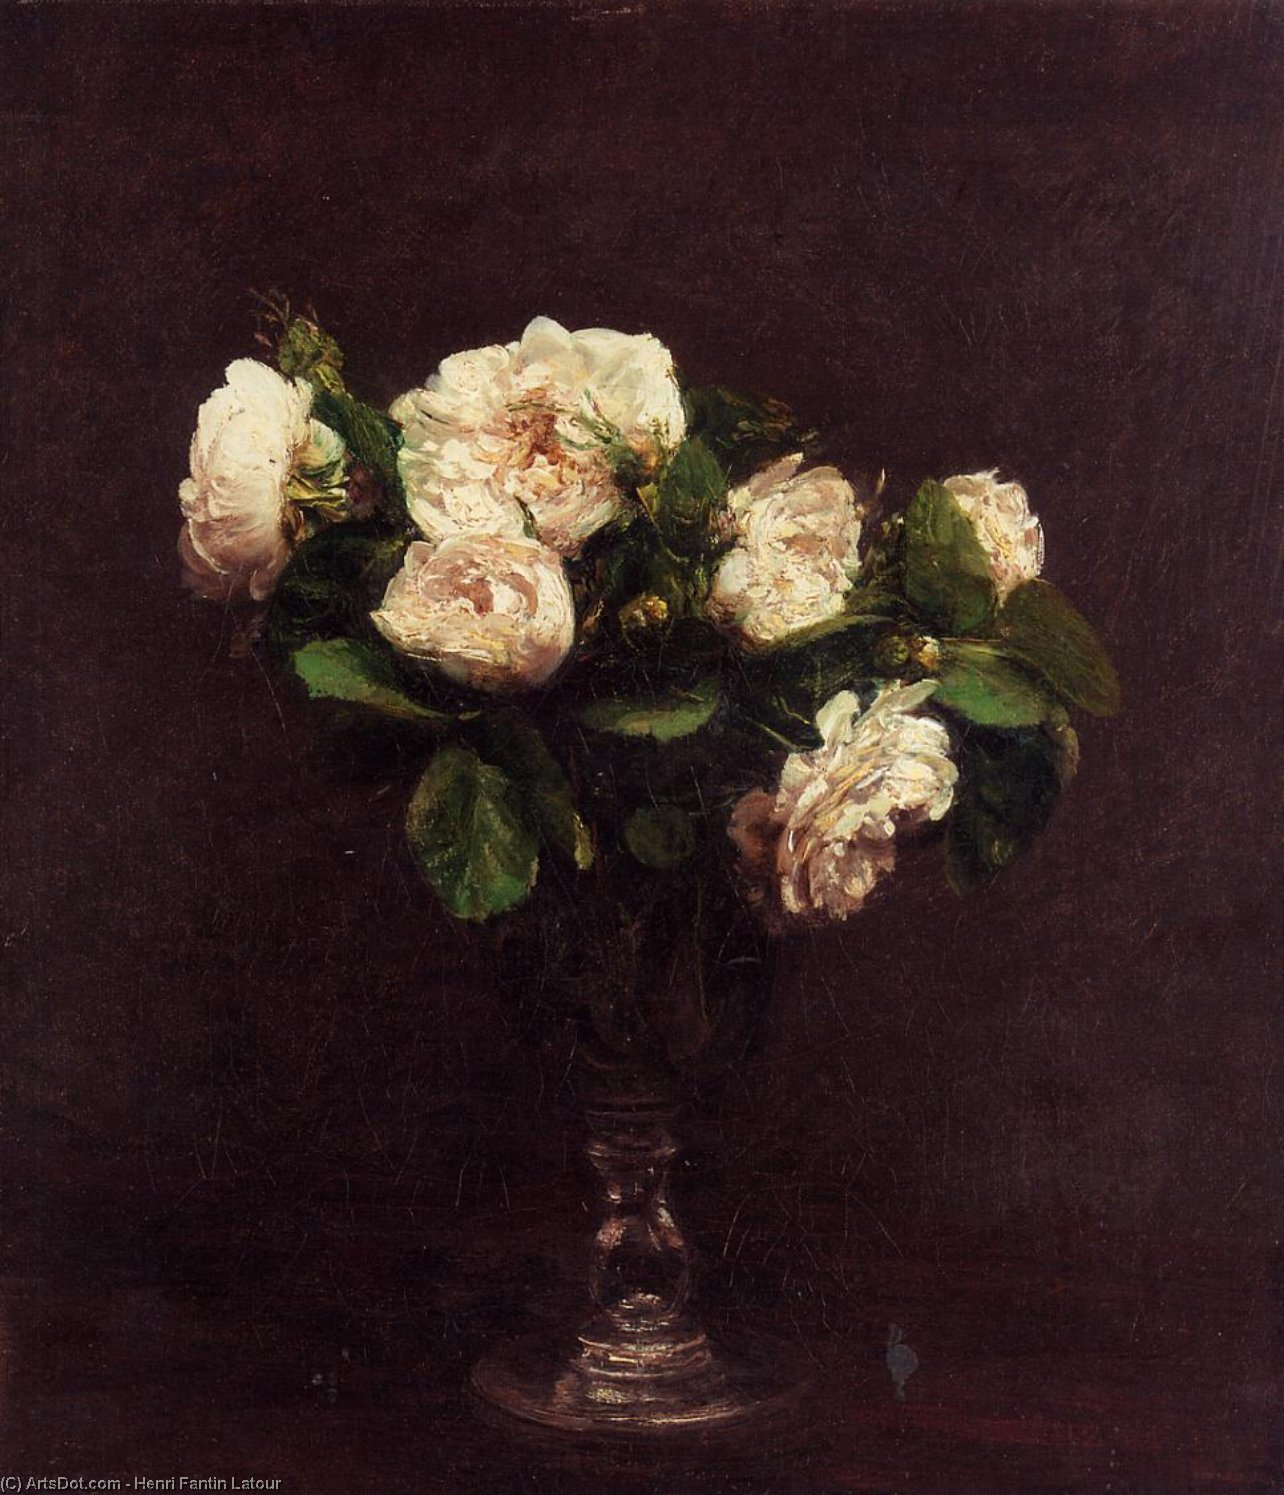 white roses by Henri Fantin Latour (1836-1904, France)